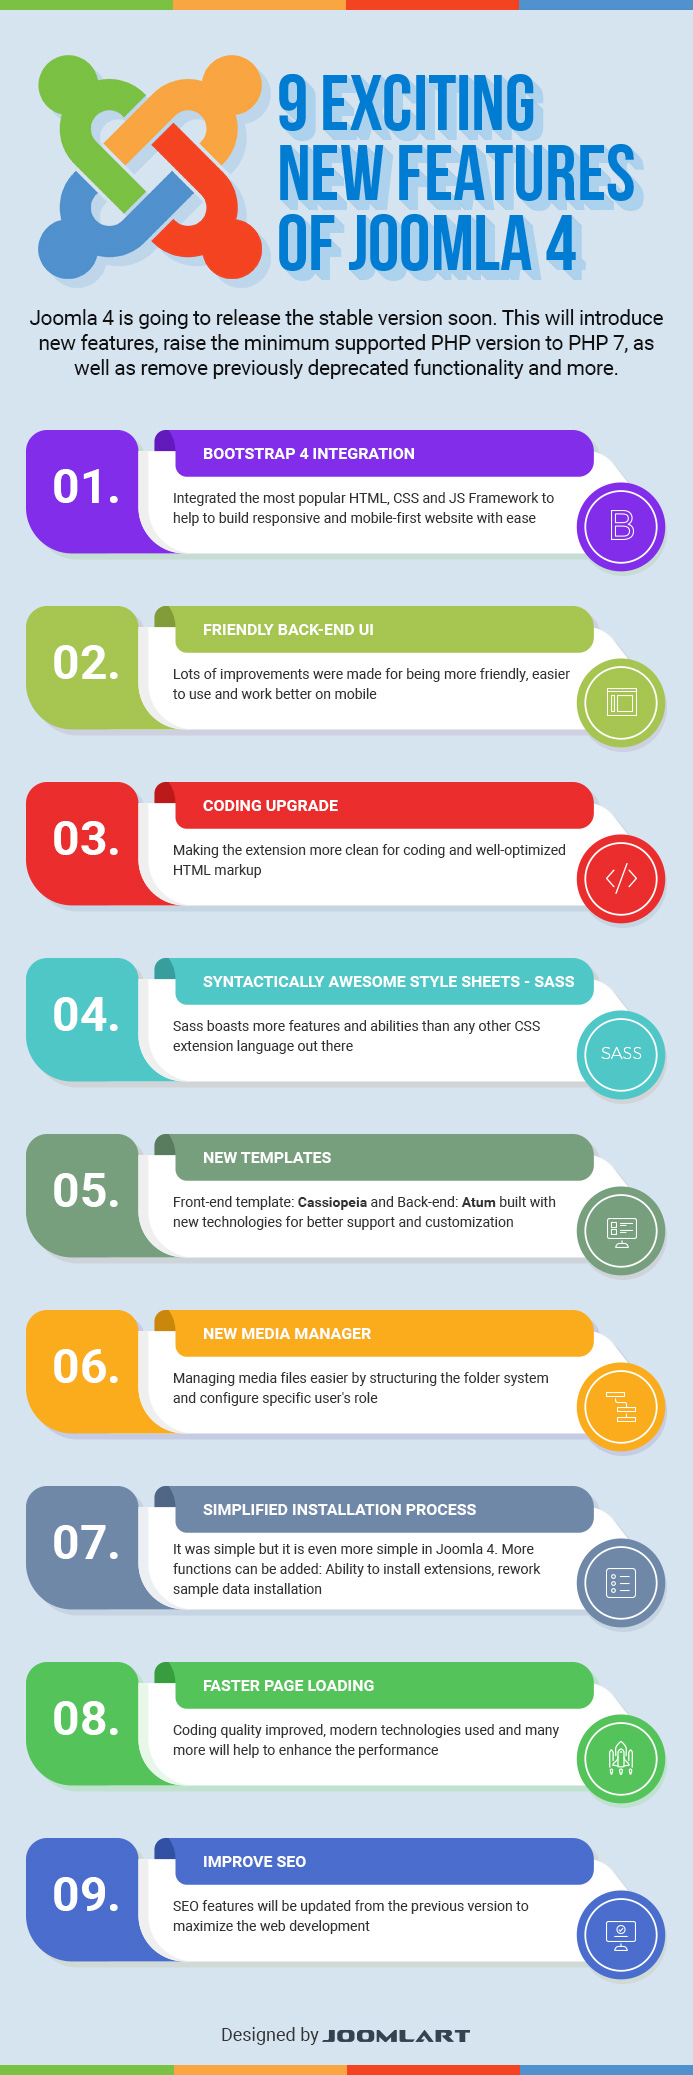 Joomla 4 features infographic